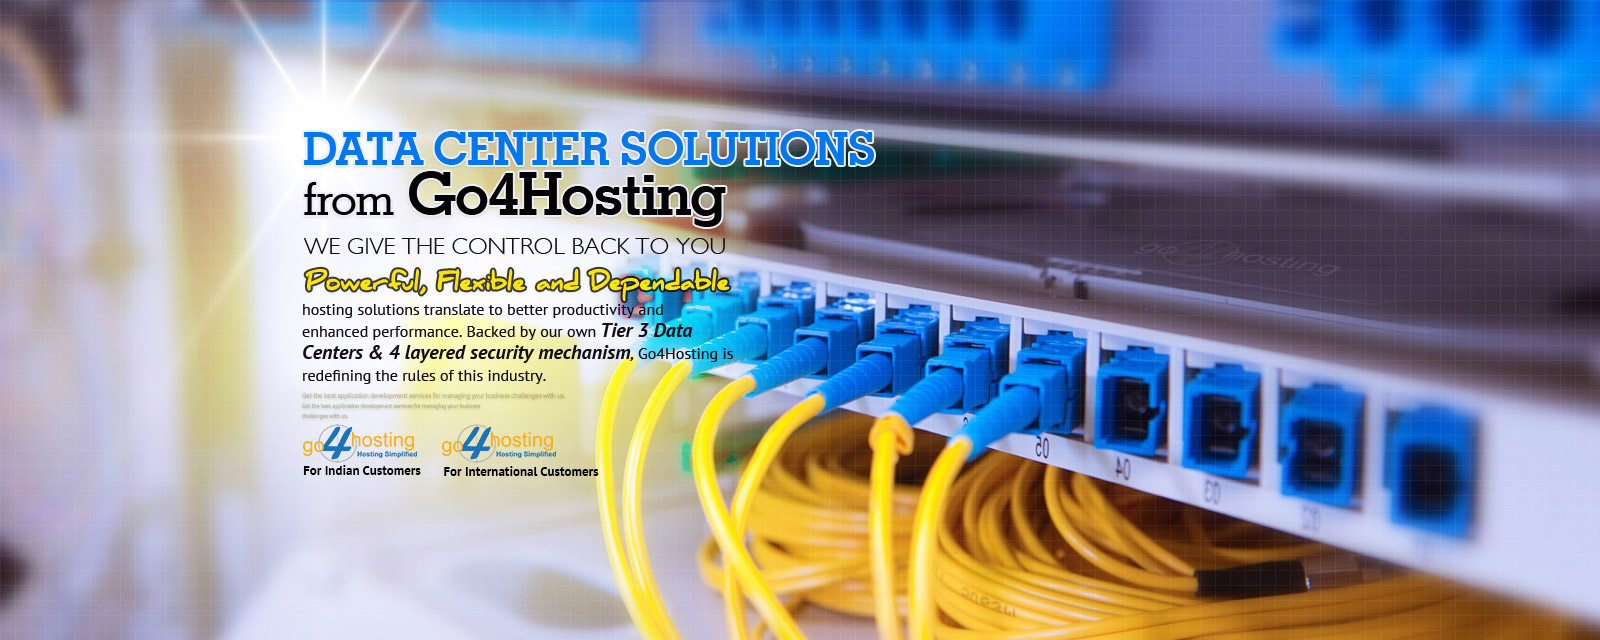 Data Center In India - Go4hosting